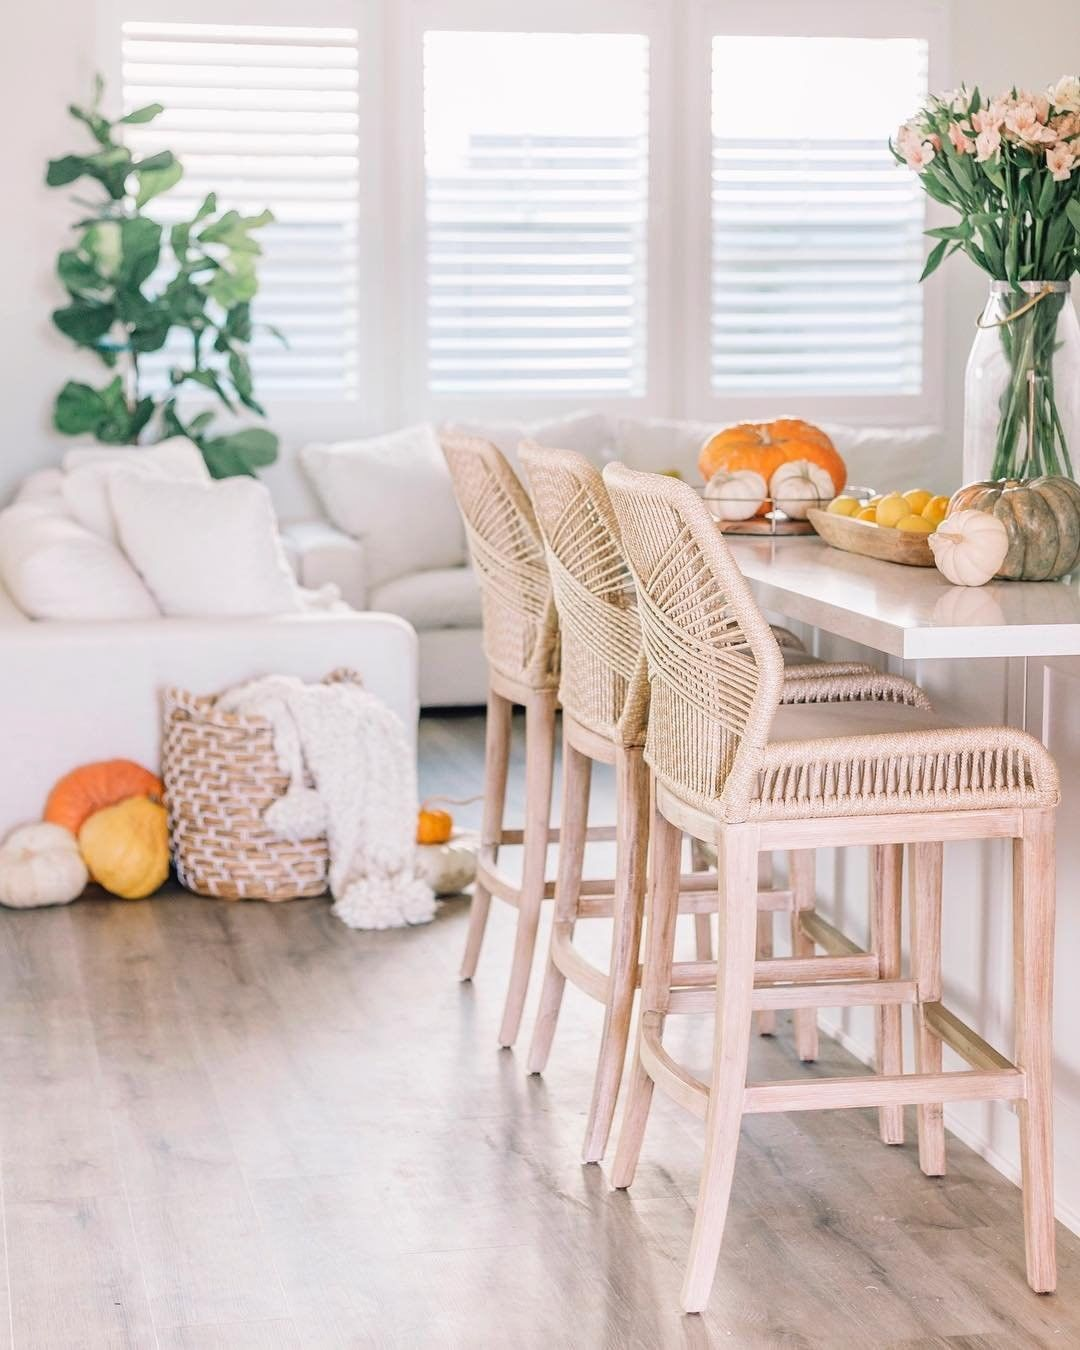 Wayfair On Instagram Pull Up A Chair Or A Barstool In This Case Lyndikennedy S Kiley Bar Stools Dining Room Design Counter Stools Wicker Counter Stools